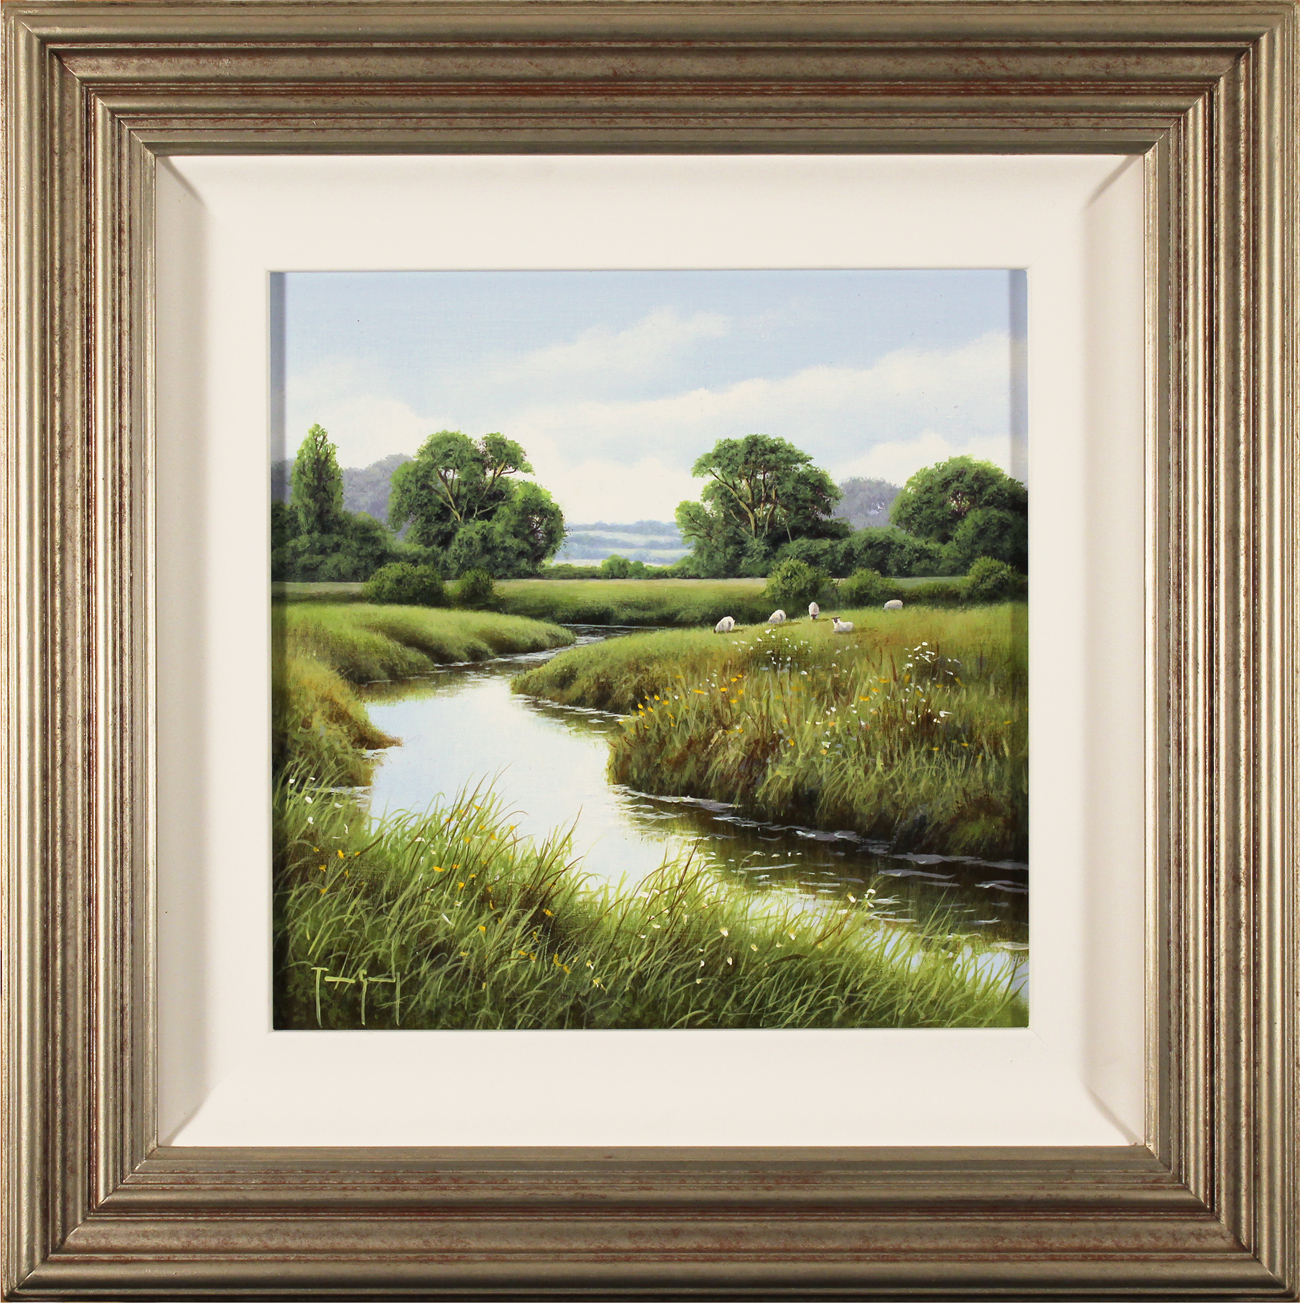 Terry Grundy, Original oil painting on panel, River Swale, North Yorkshire Click to enlarge